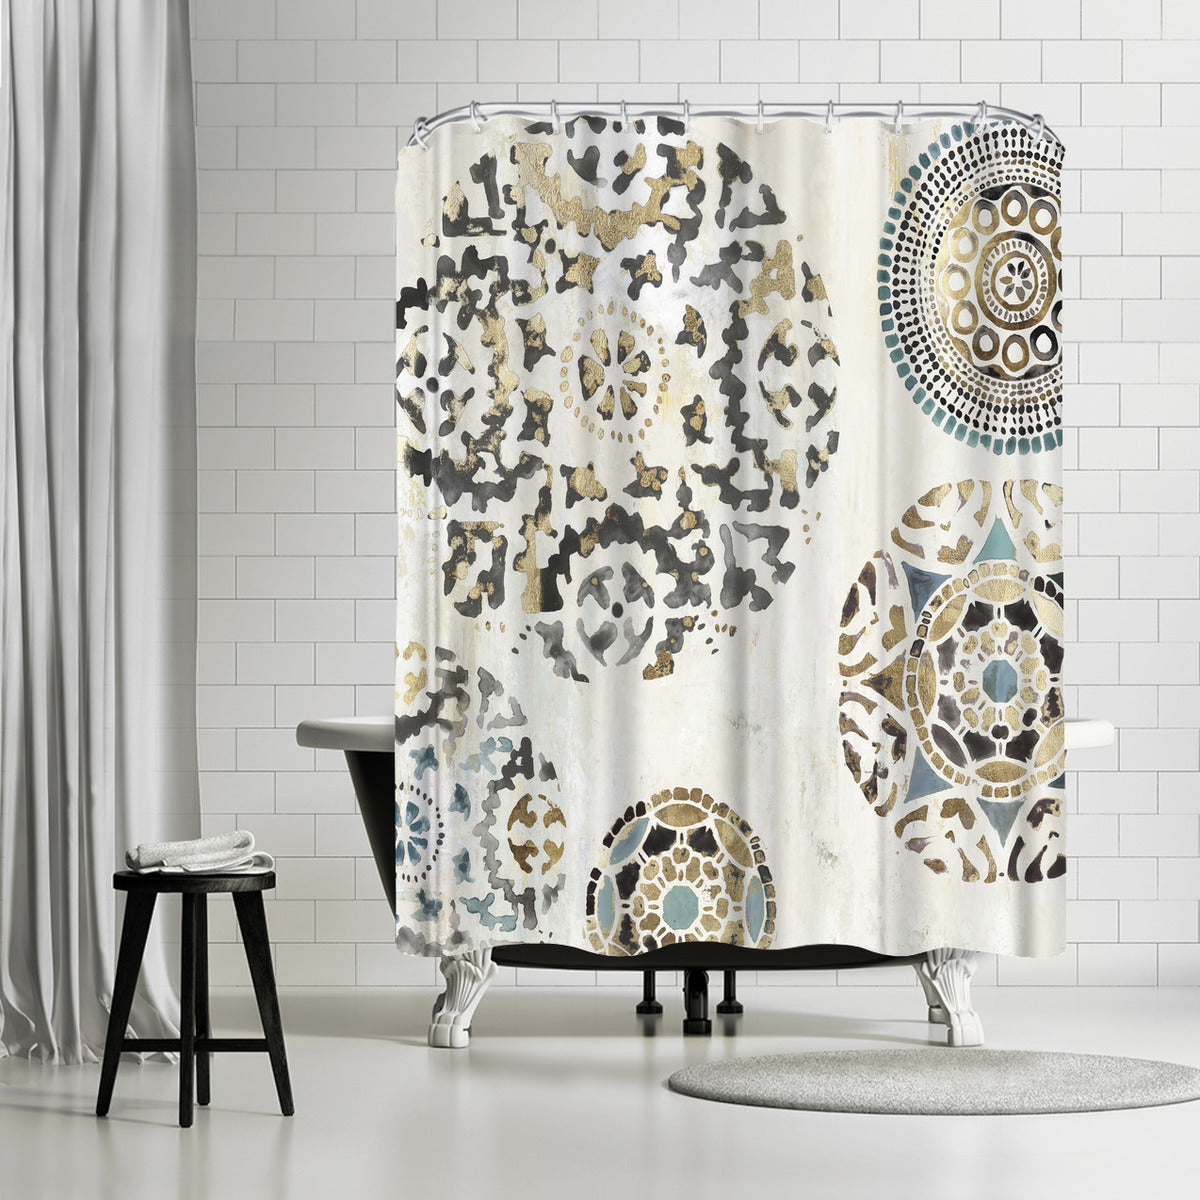 Rounded I by PI Creative Art Shower Curtain -  - Americanflat